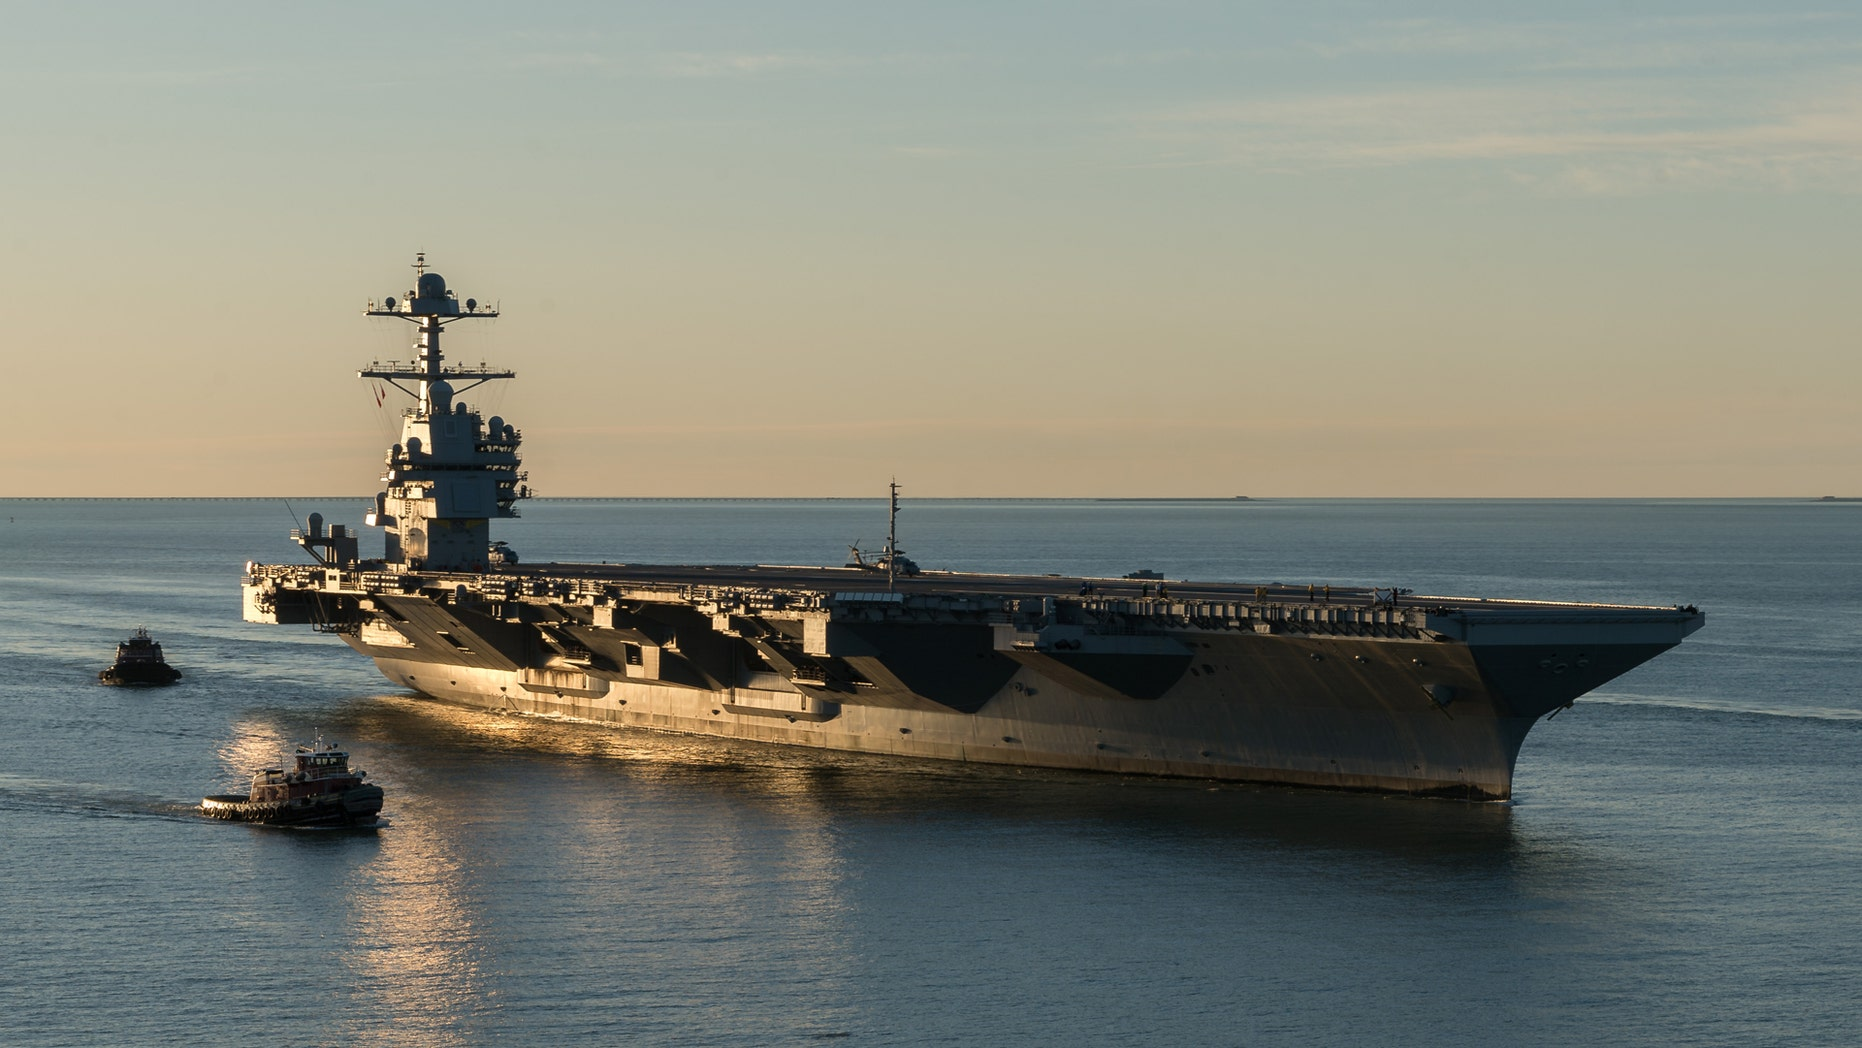 The 1,100-foot ship is the successor to the U.S. Navy's Nimitz class aircraft carriers. (Matt Hildreth/HII)